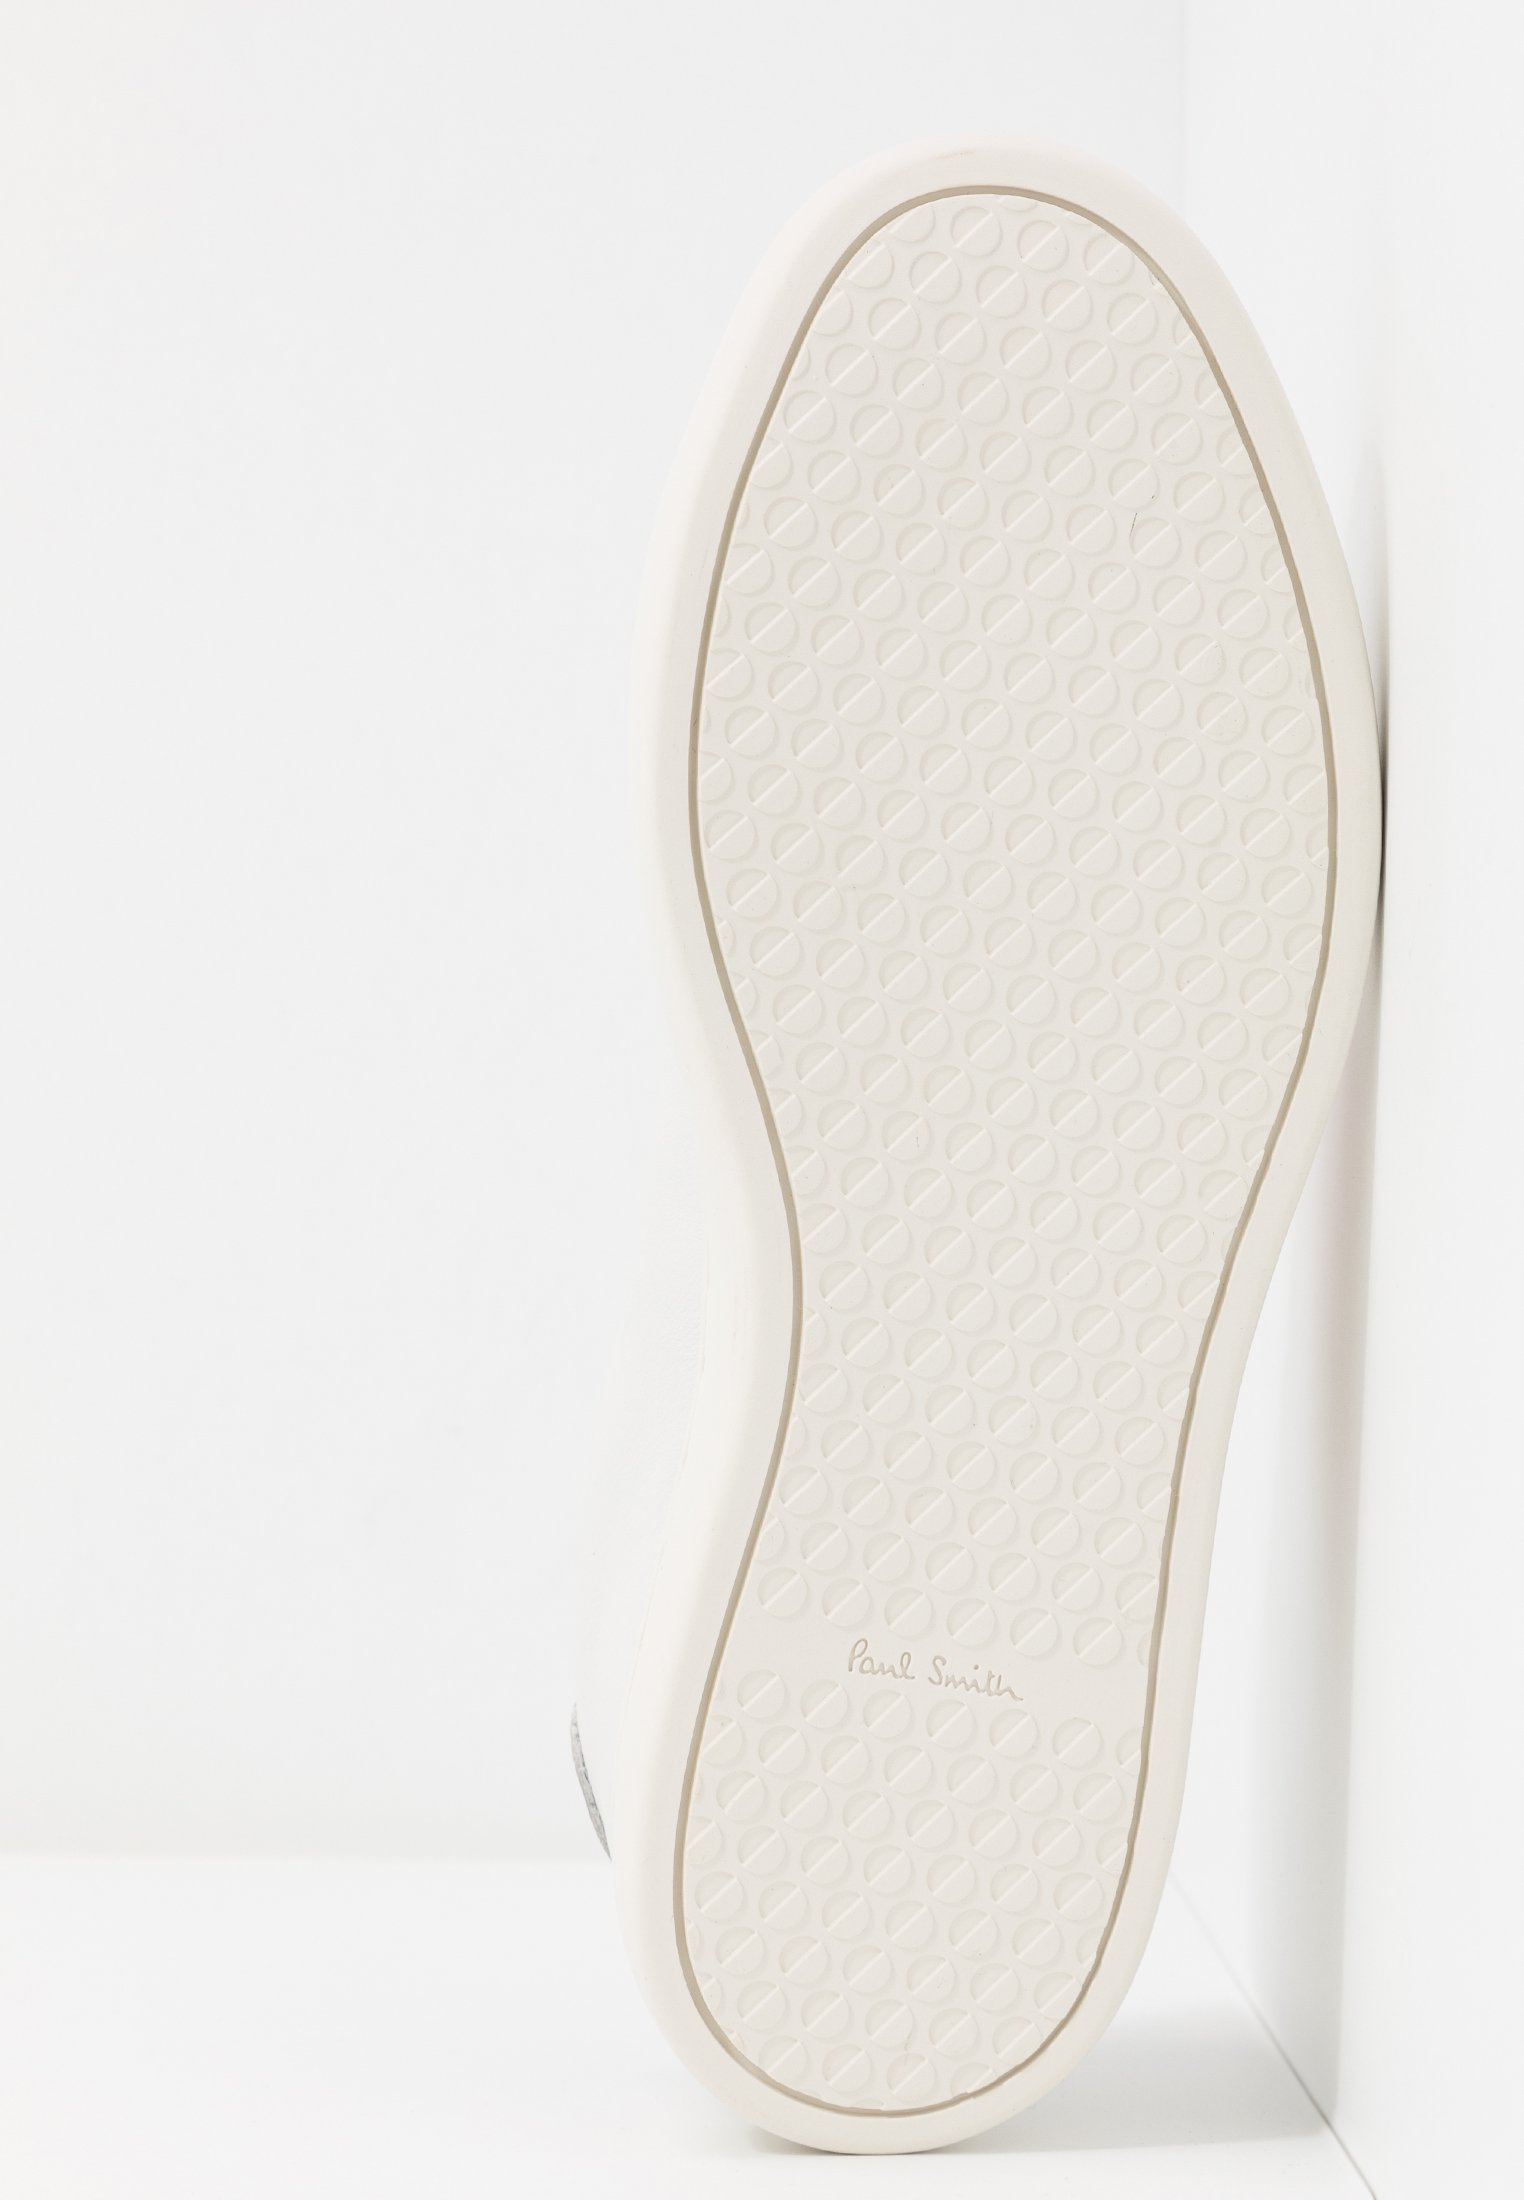 Basse White Smith Basse Smith LapinSneakers Paul Paul LapinSneakers sxhQrCtd